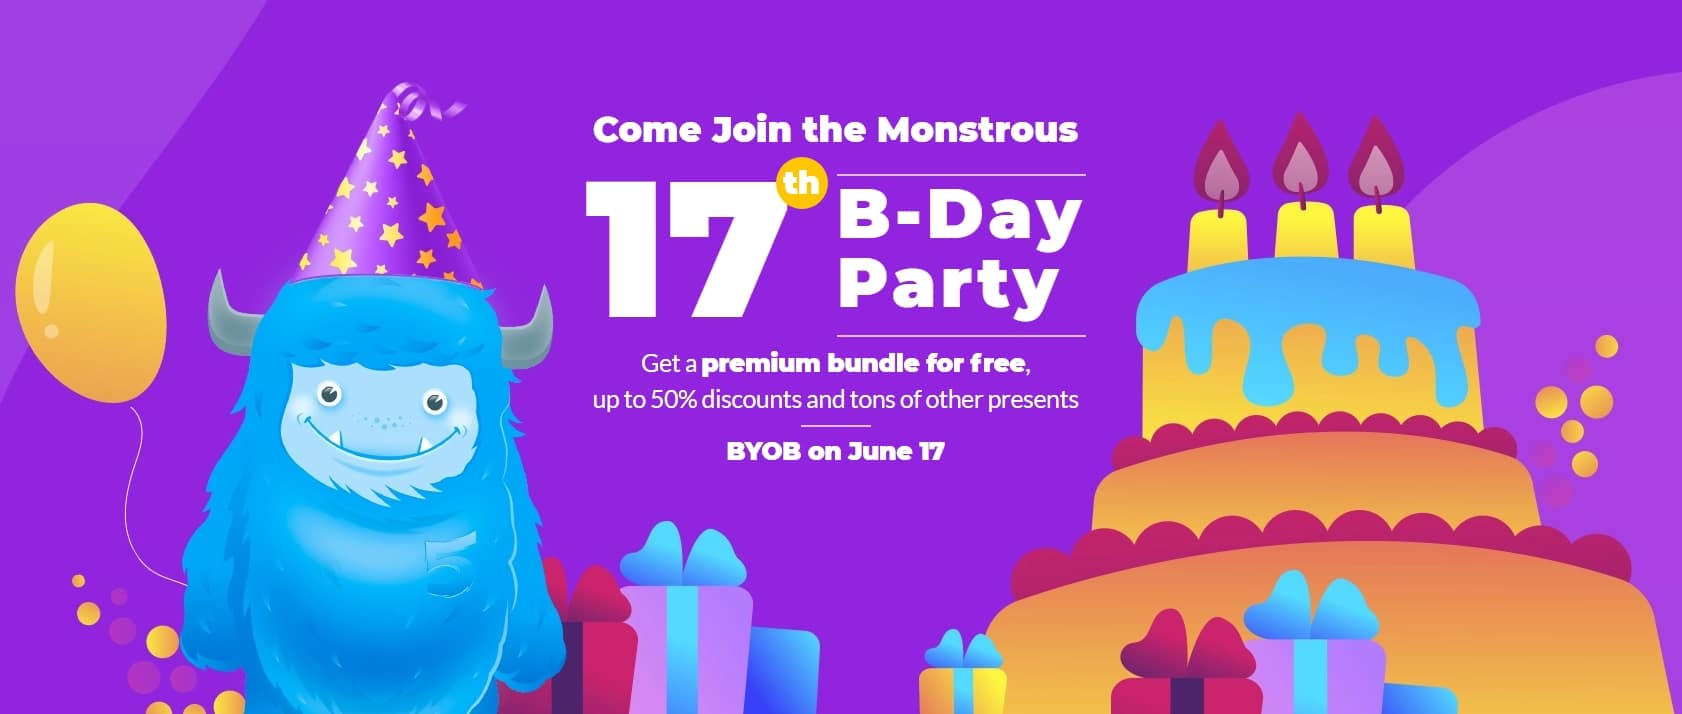 TemplateMonster Birthday